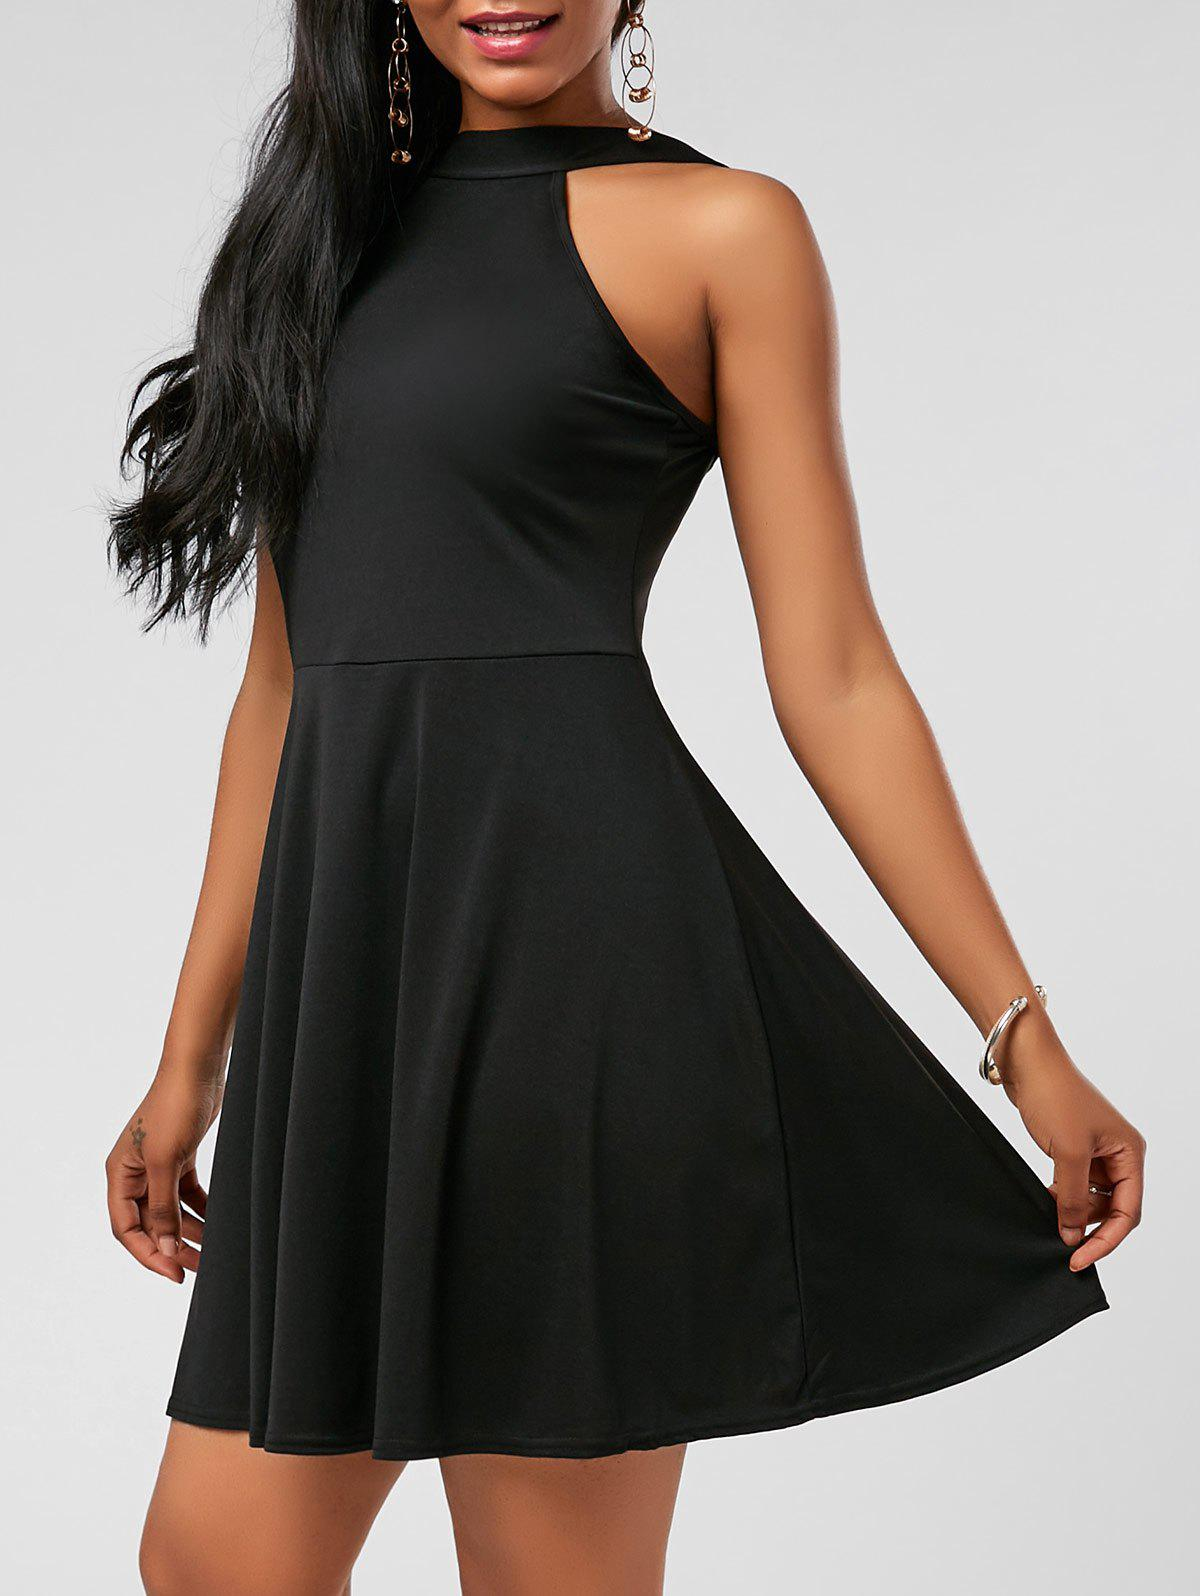 High Neck Fit and Flare Mini Cocktail Dress - BLACK S